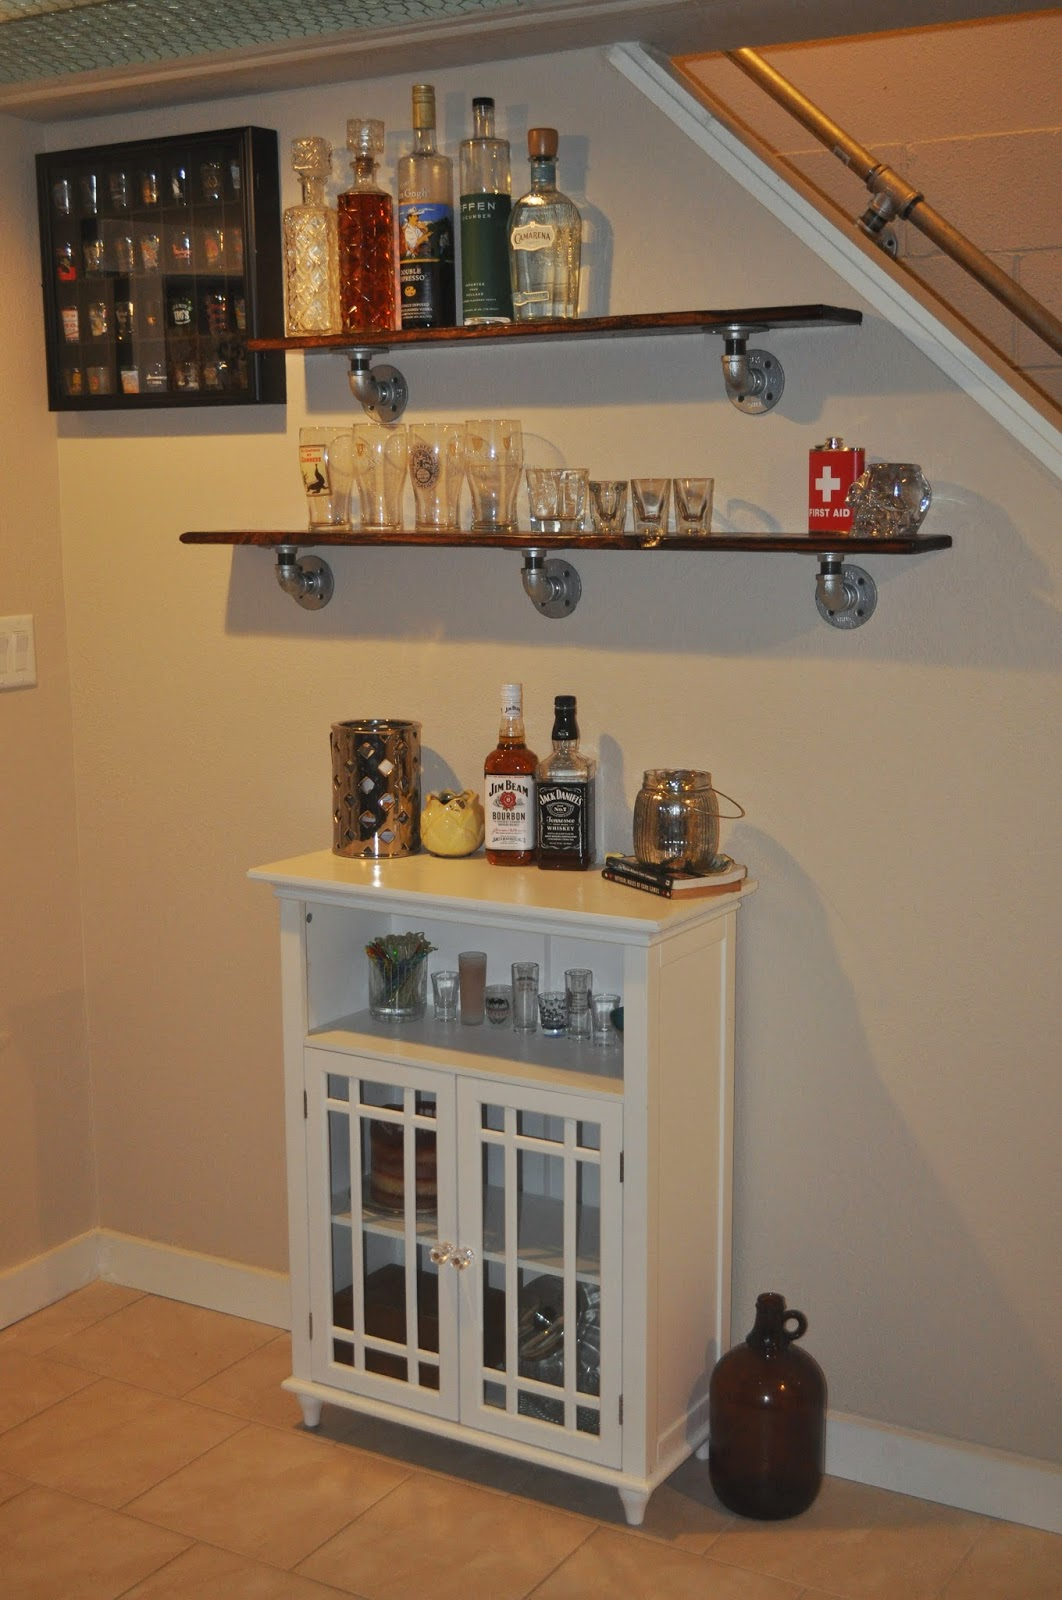 stress relief, diy, distressed, boards, basement, bar, basement bar, decor, diy shelving, shelving